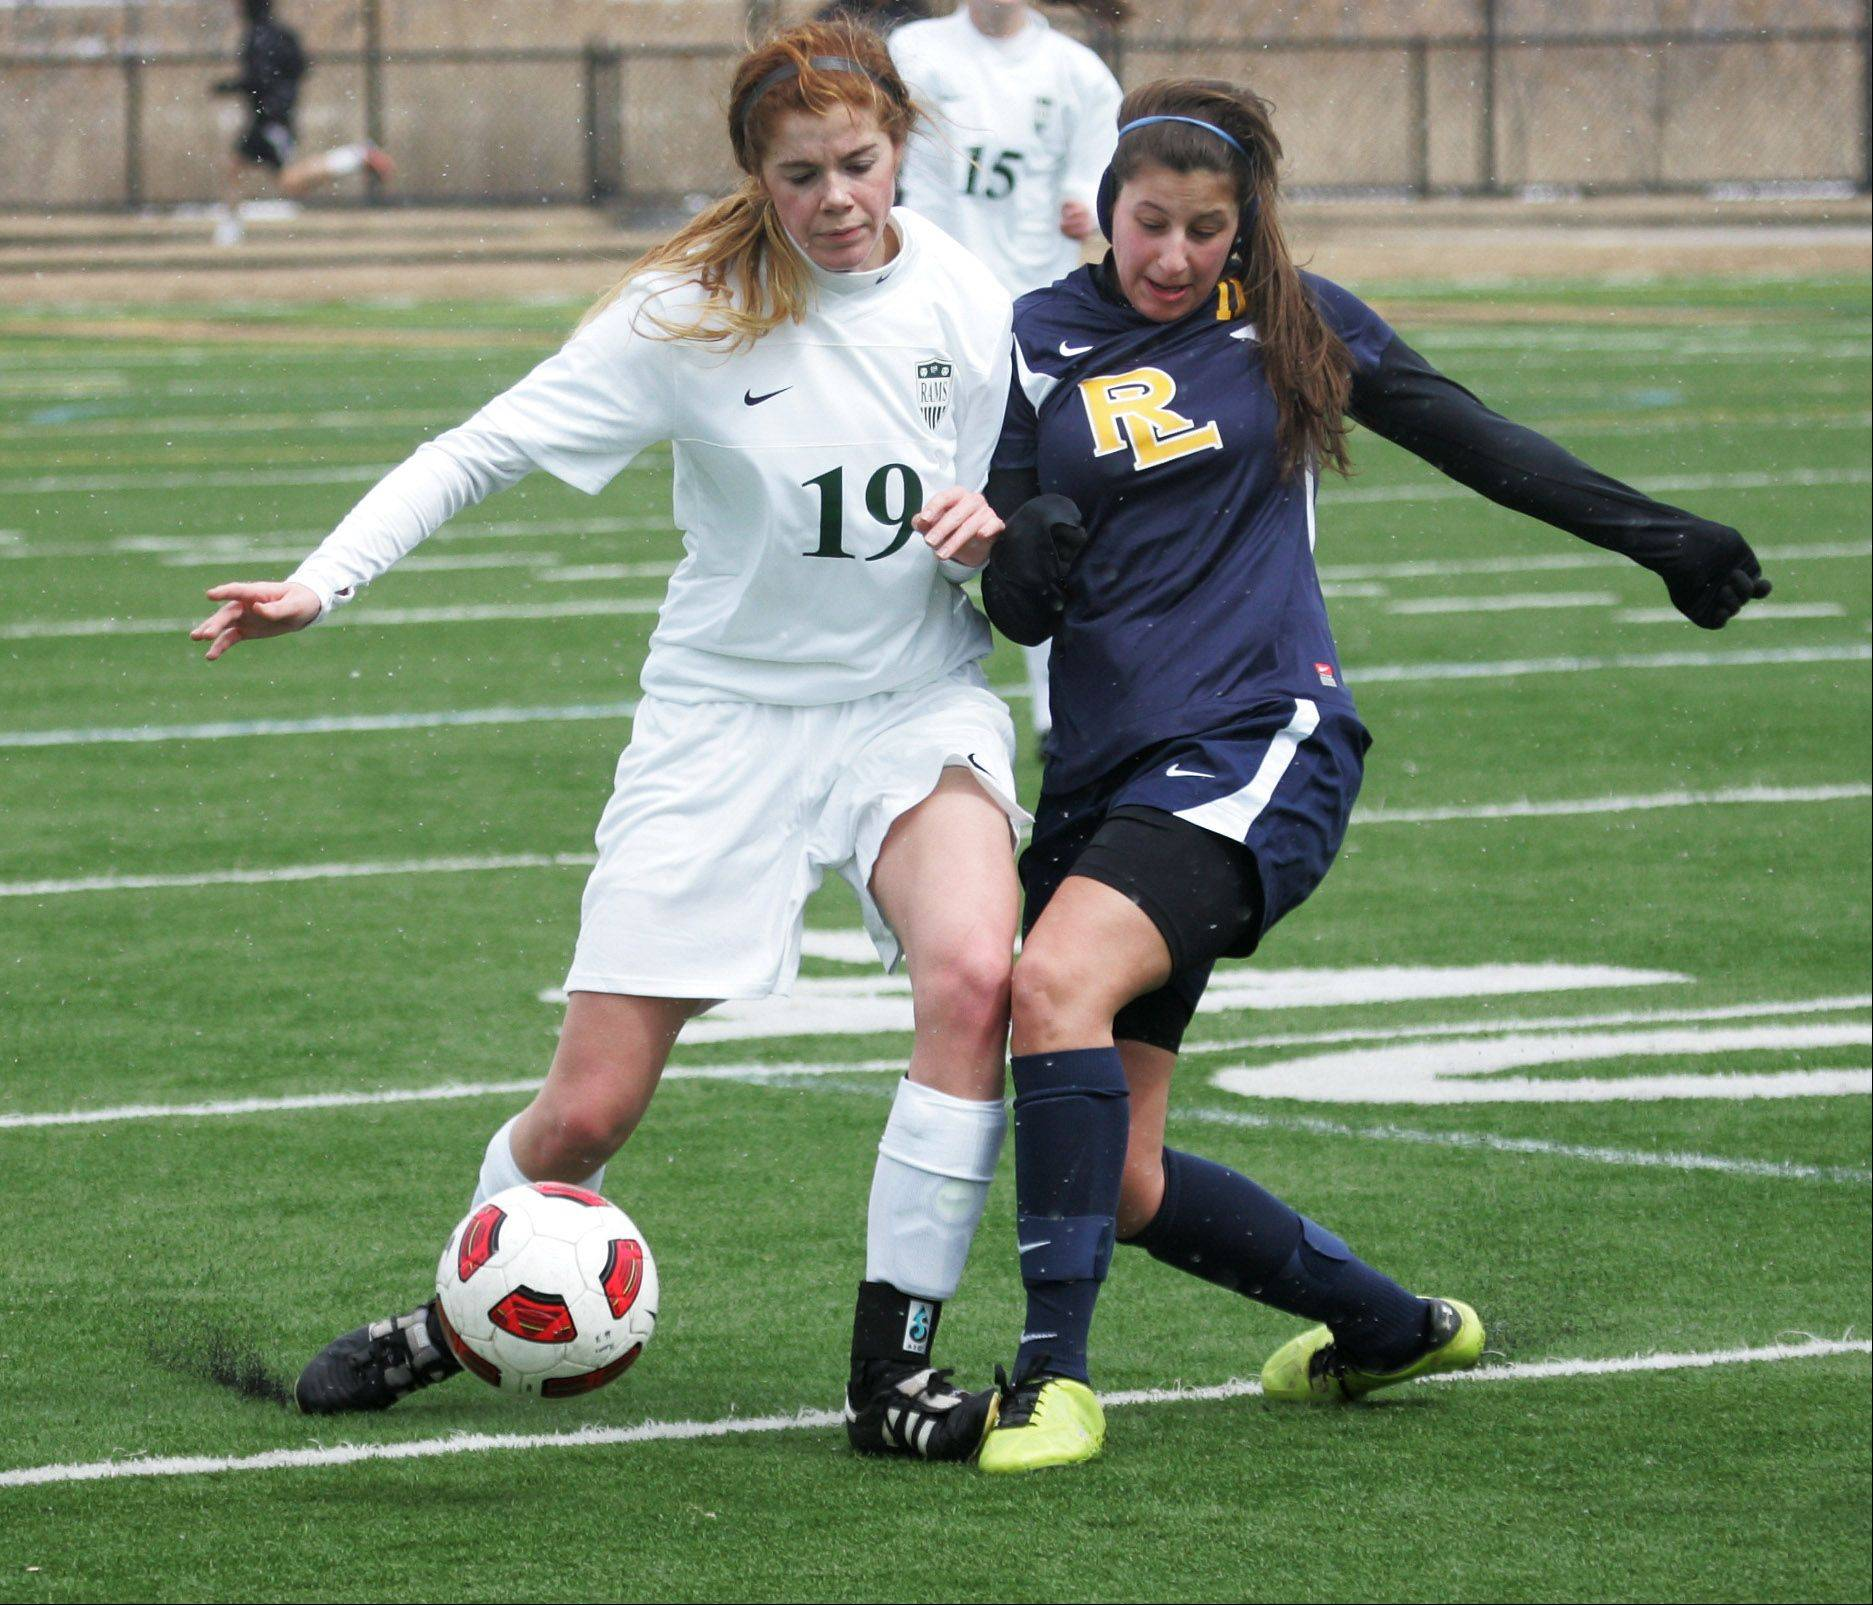 Grayslake Central defender Lauren Spalding battles Round Lake forward Morgin Evins for the ball Monday at Grayslake North.